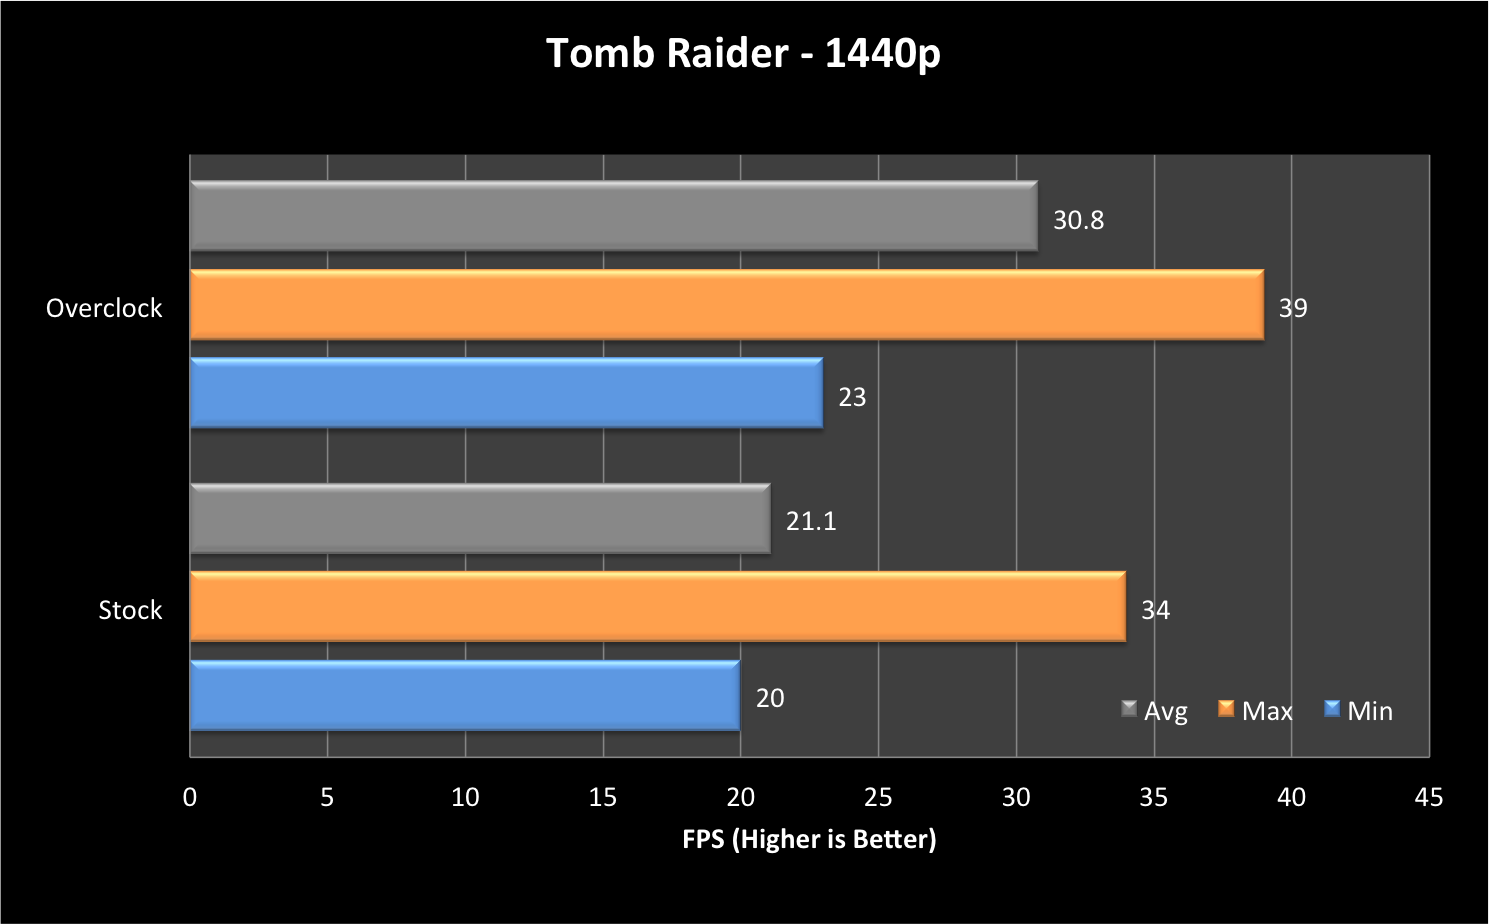 TombRaider - 1440